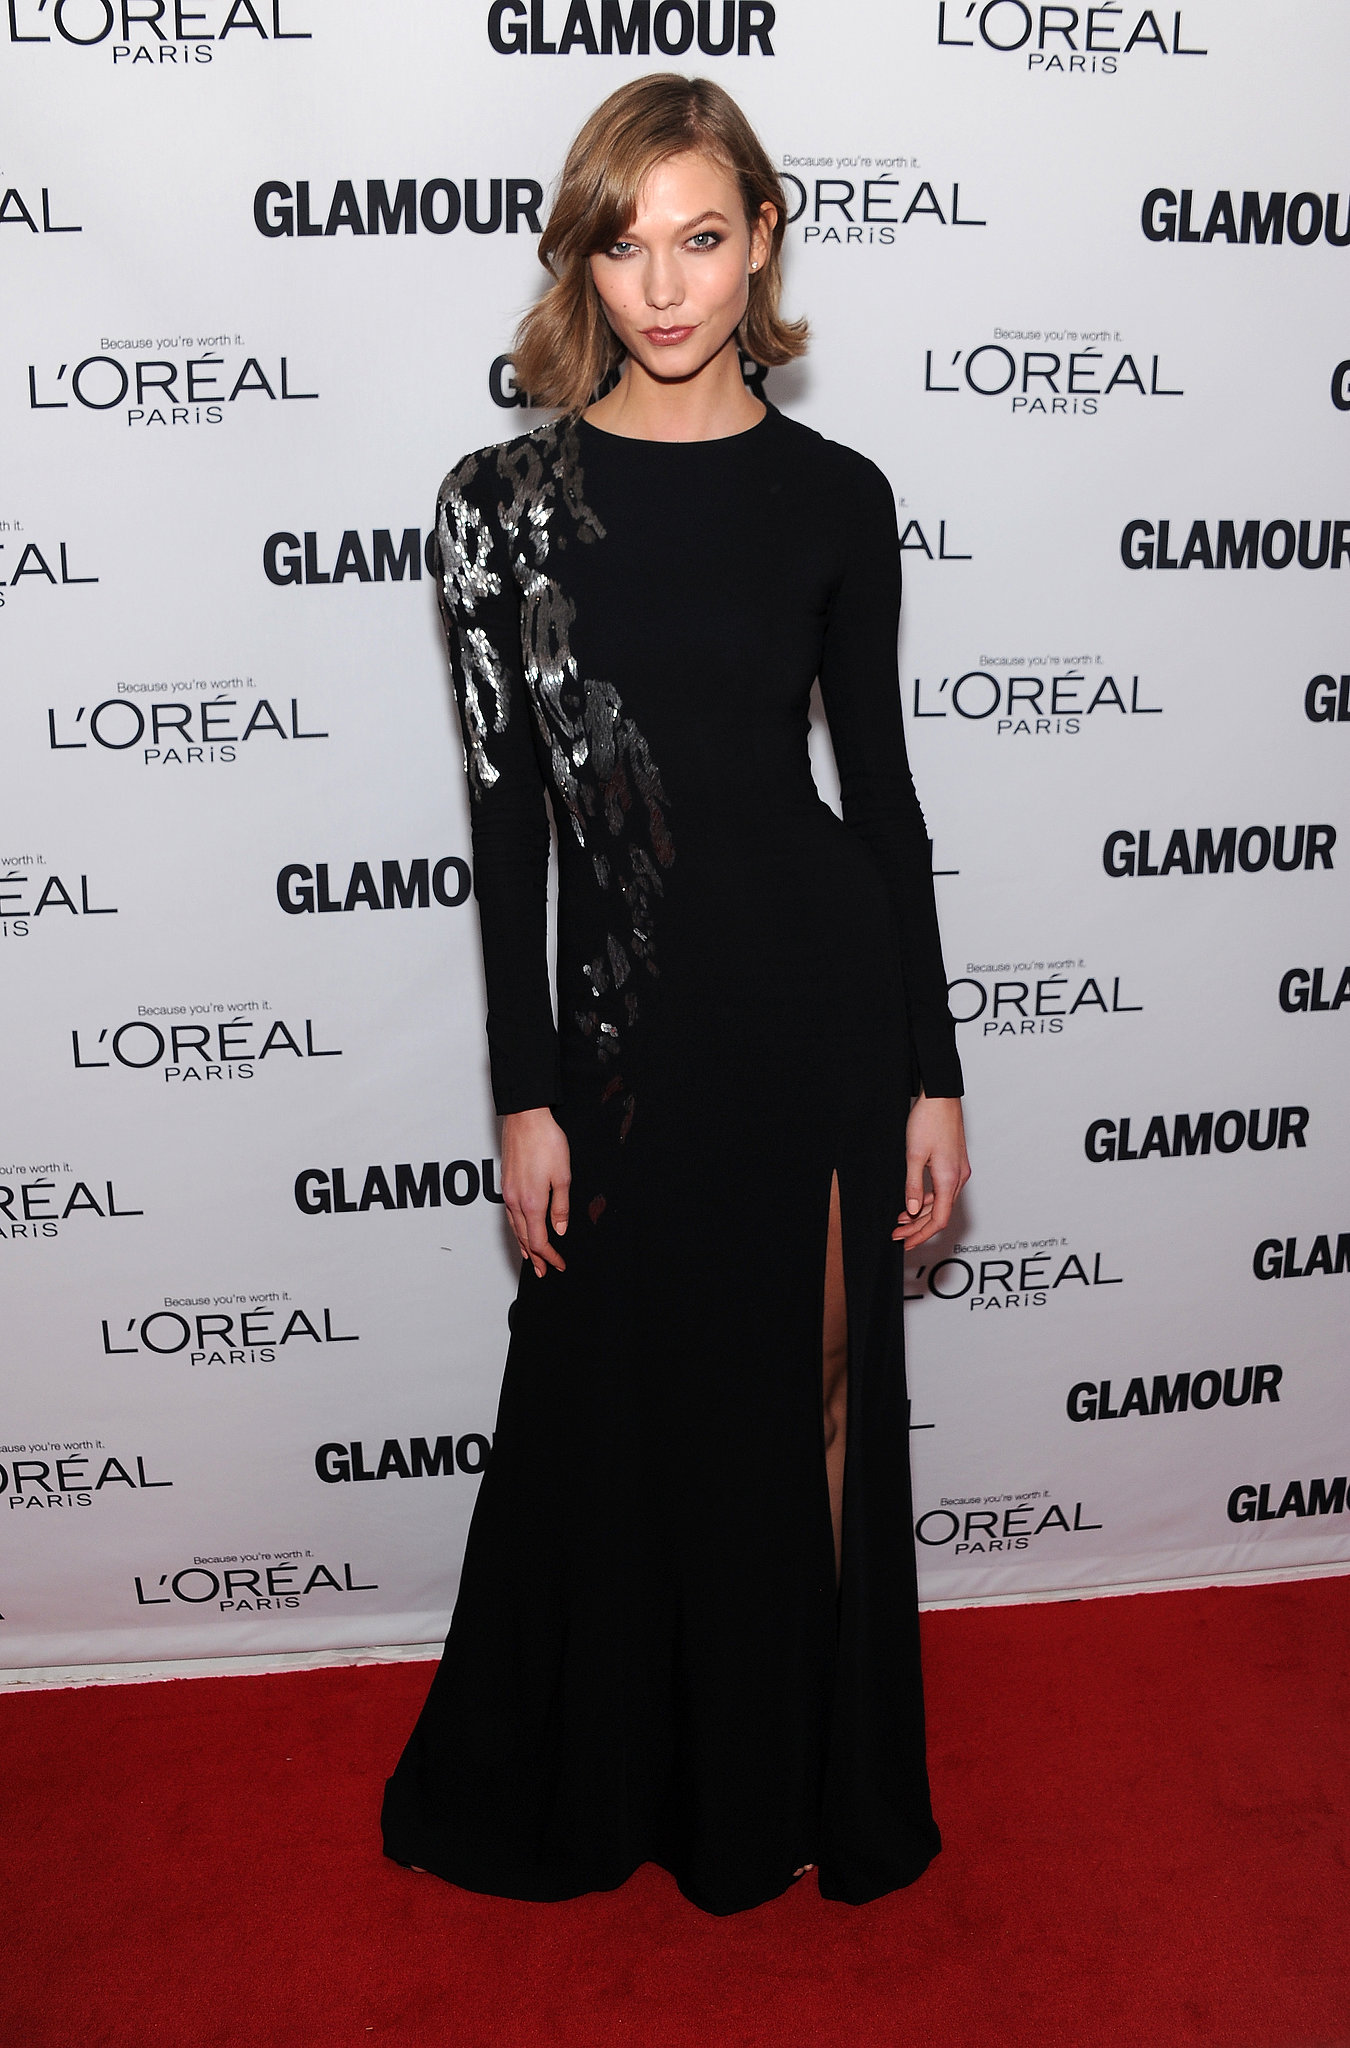 Karlie Kloss in Oscar de la Renta at the Glamour Women of the Year Awards.